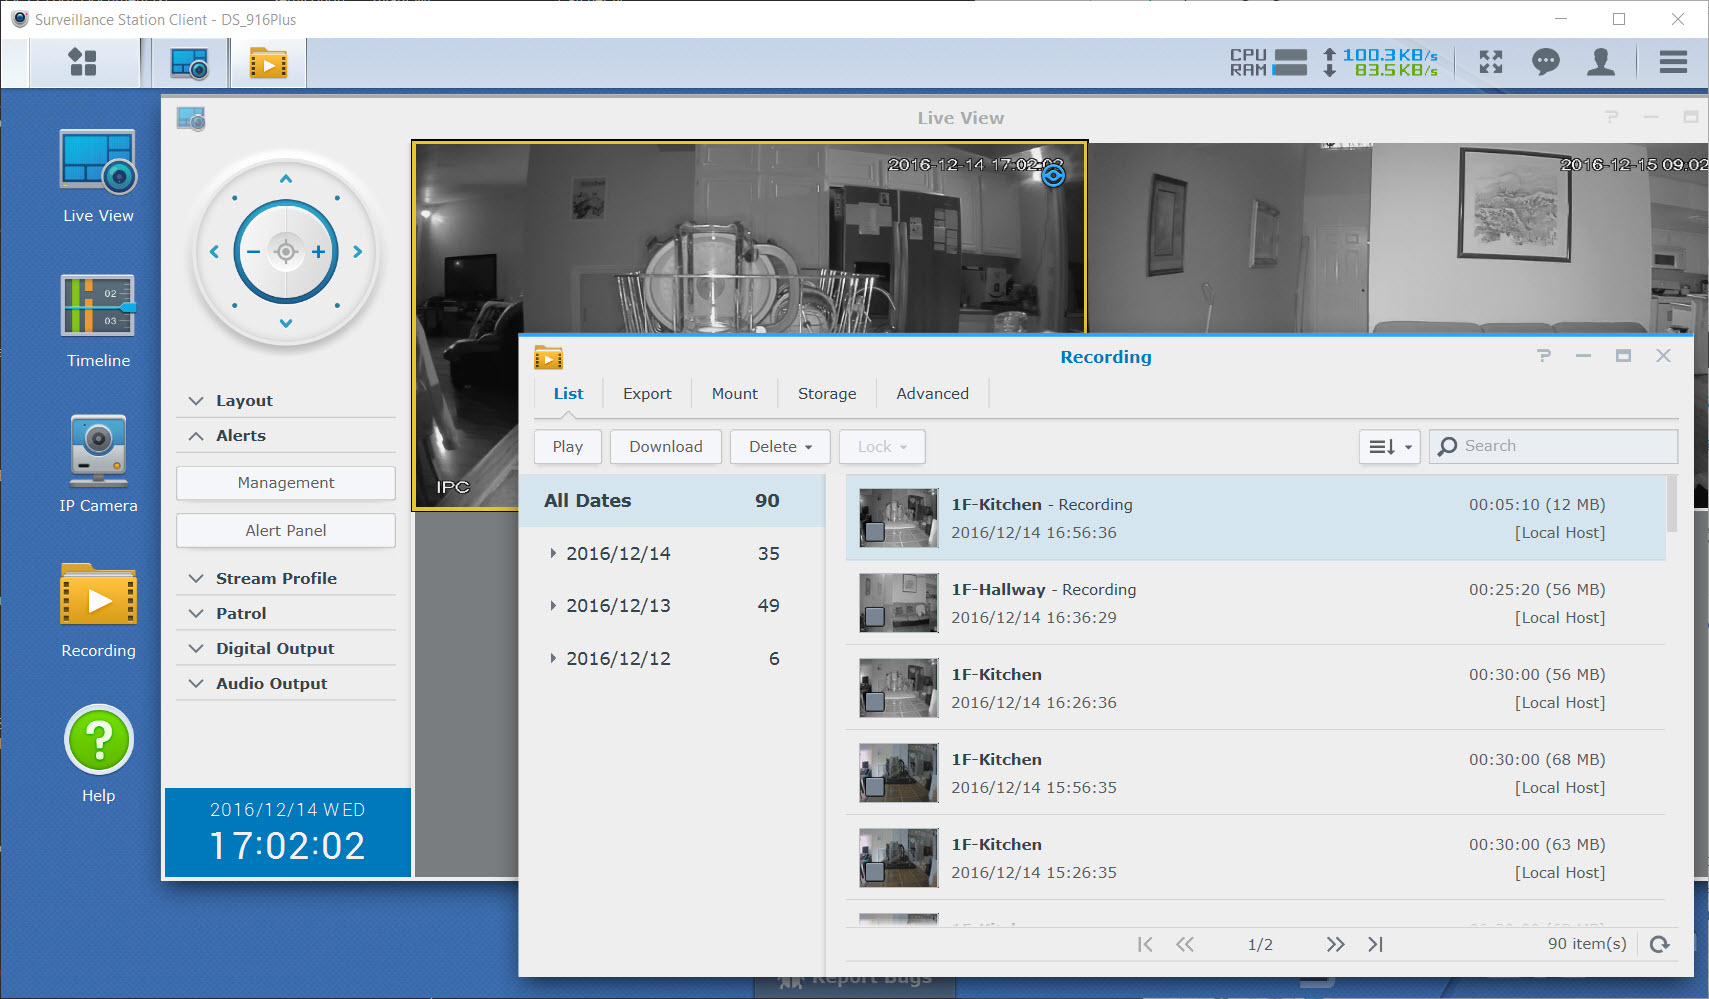 How to Build an DIY Security System Using Synology Surveillance